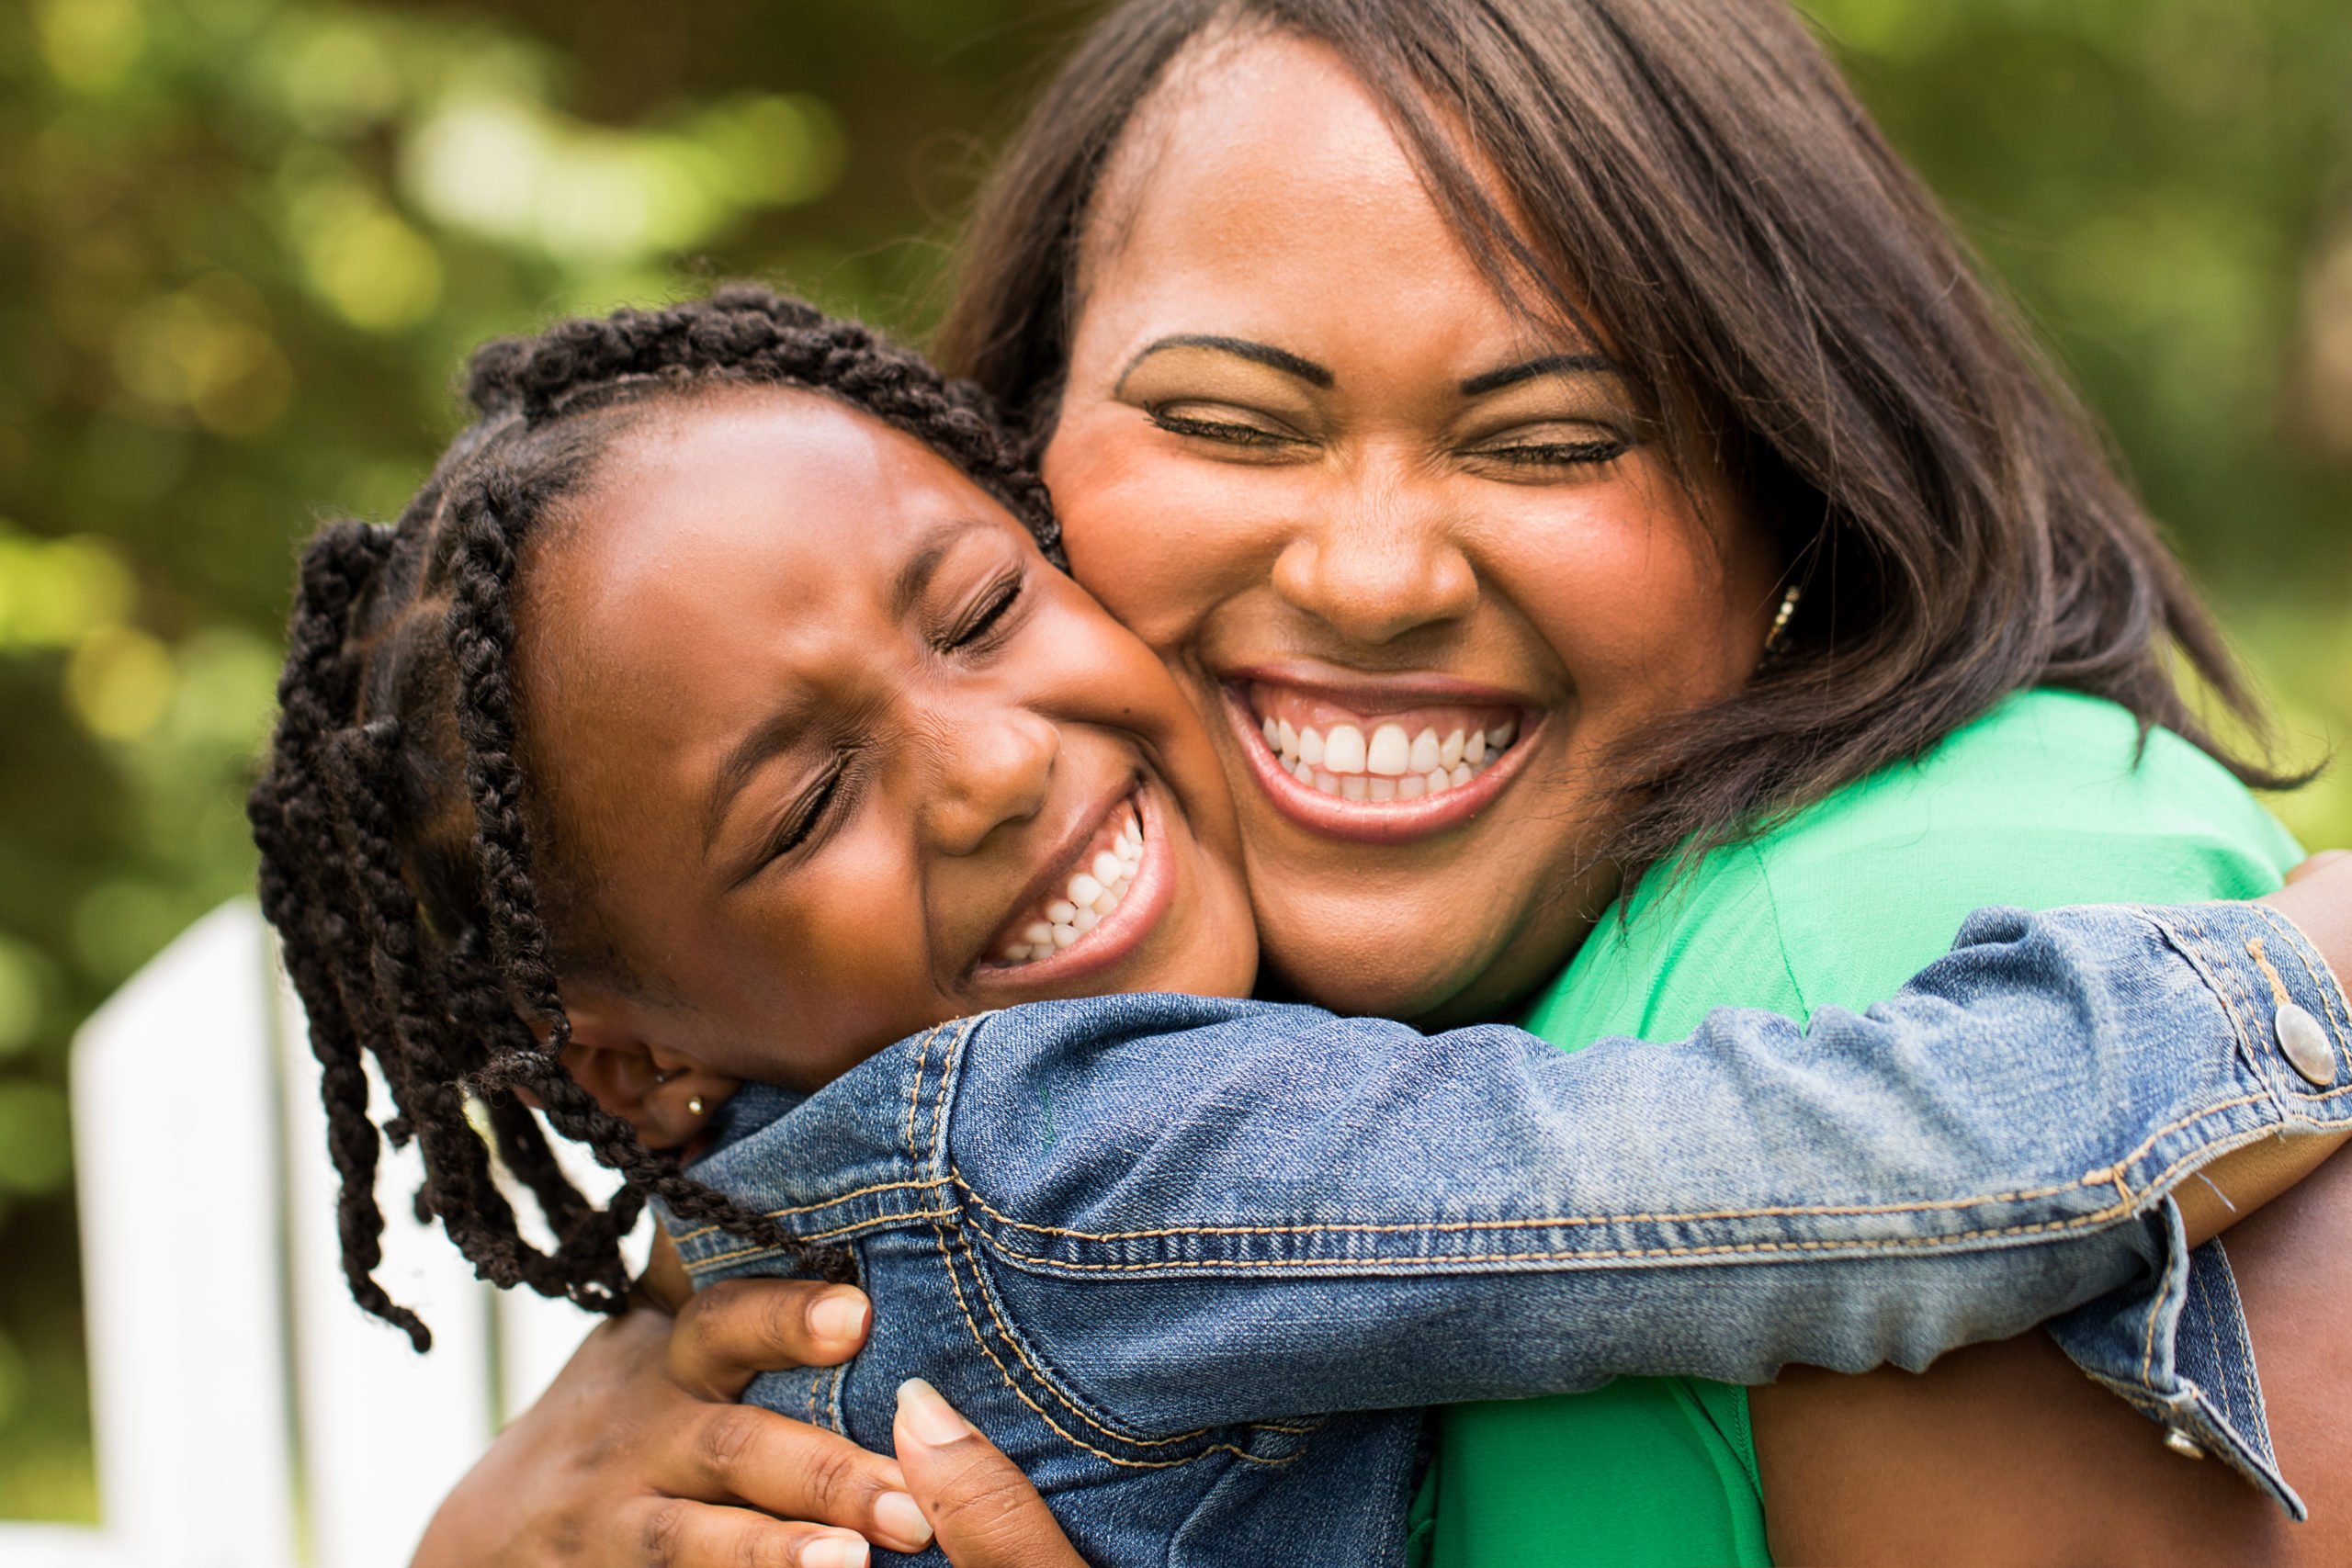 image of woman hugging young girl tightly, both smiling